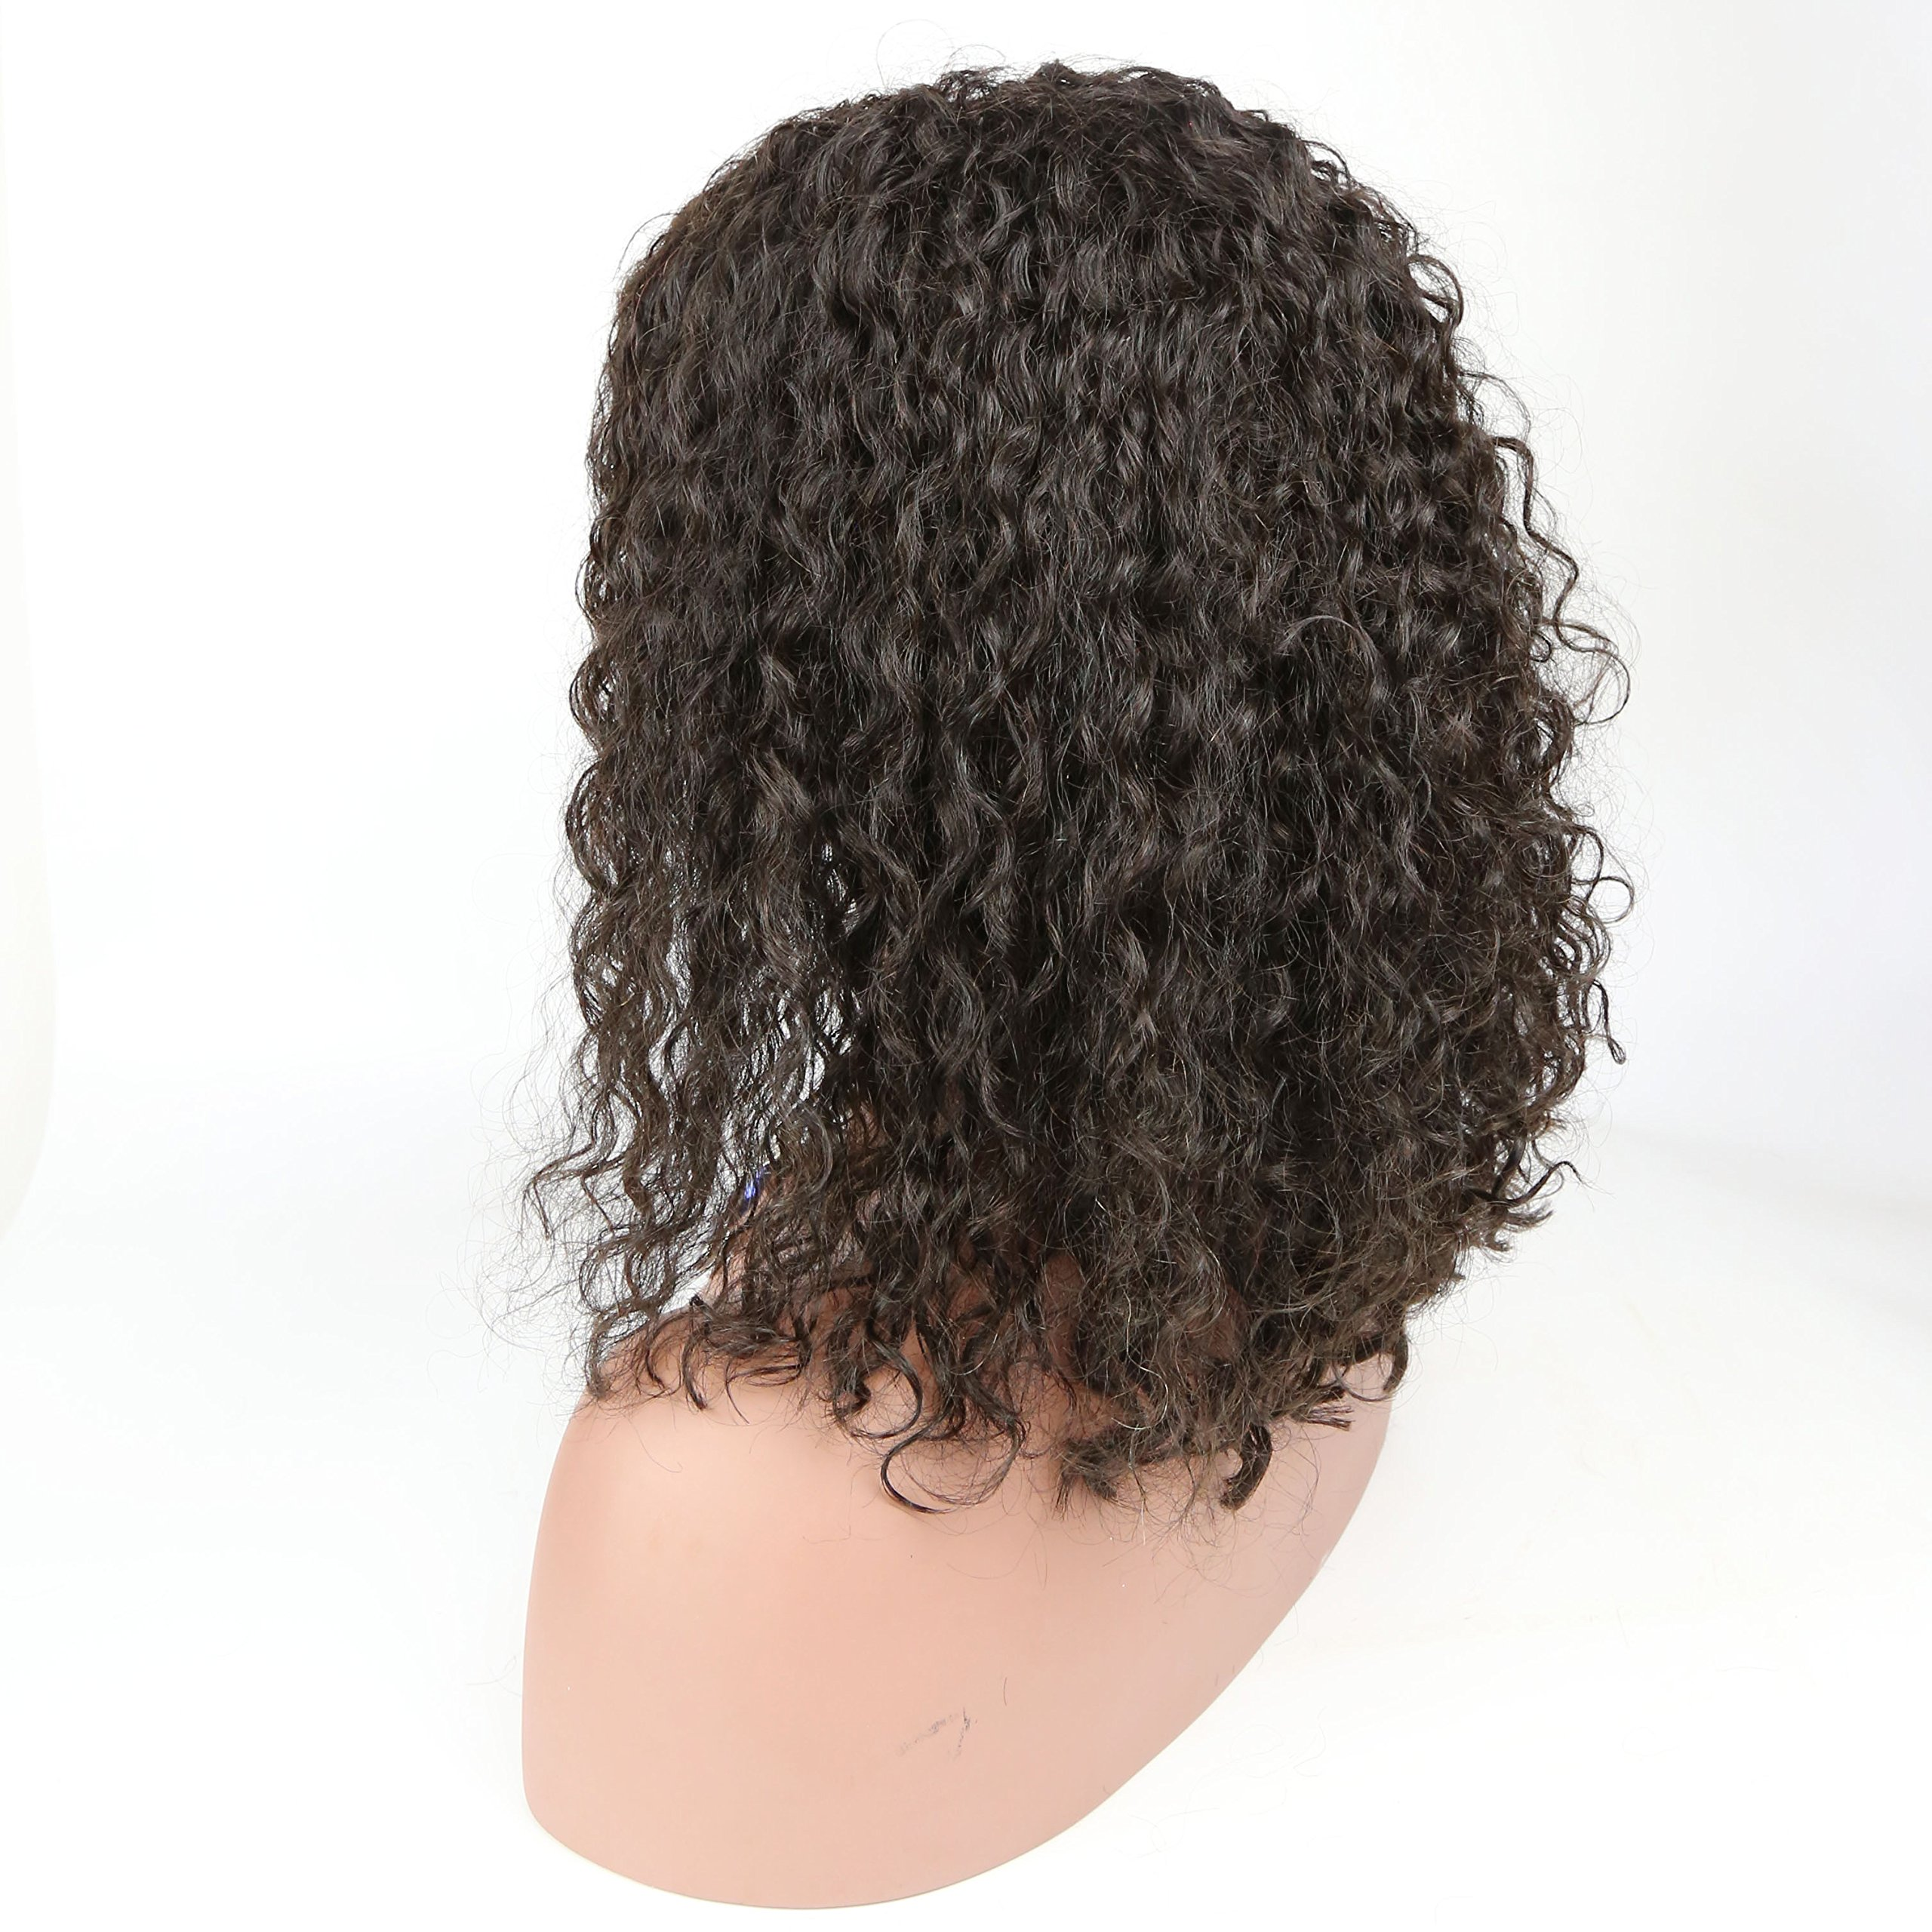 150% Density Brazilian Short Curly Bob Human Hair Lace Front Wigs with Baby Hair for Black Women Natural Color 14 inch